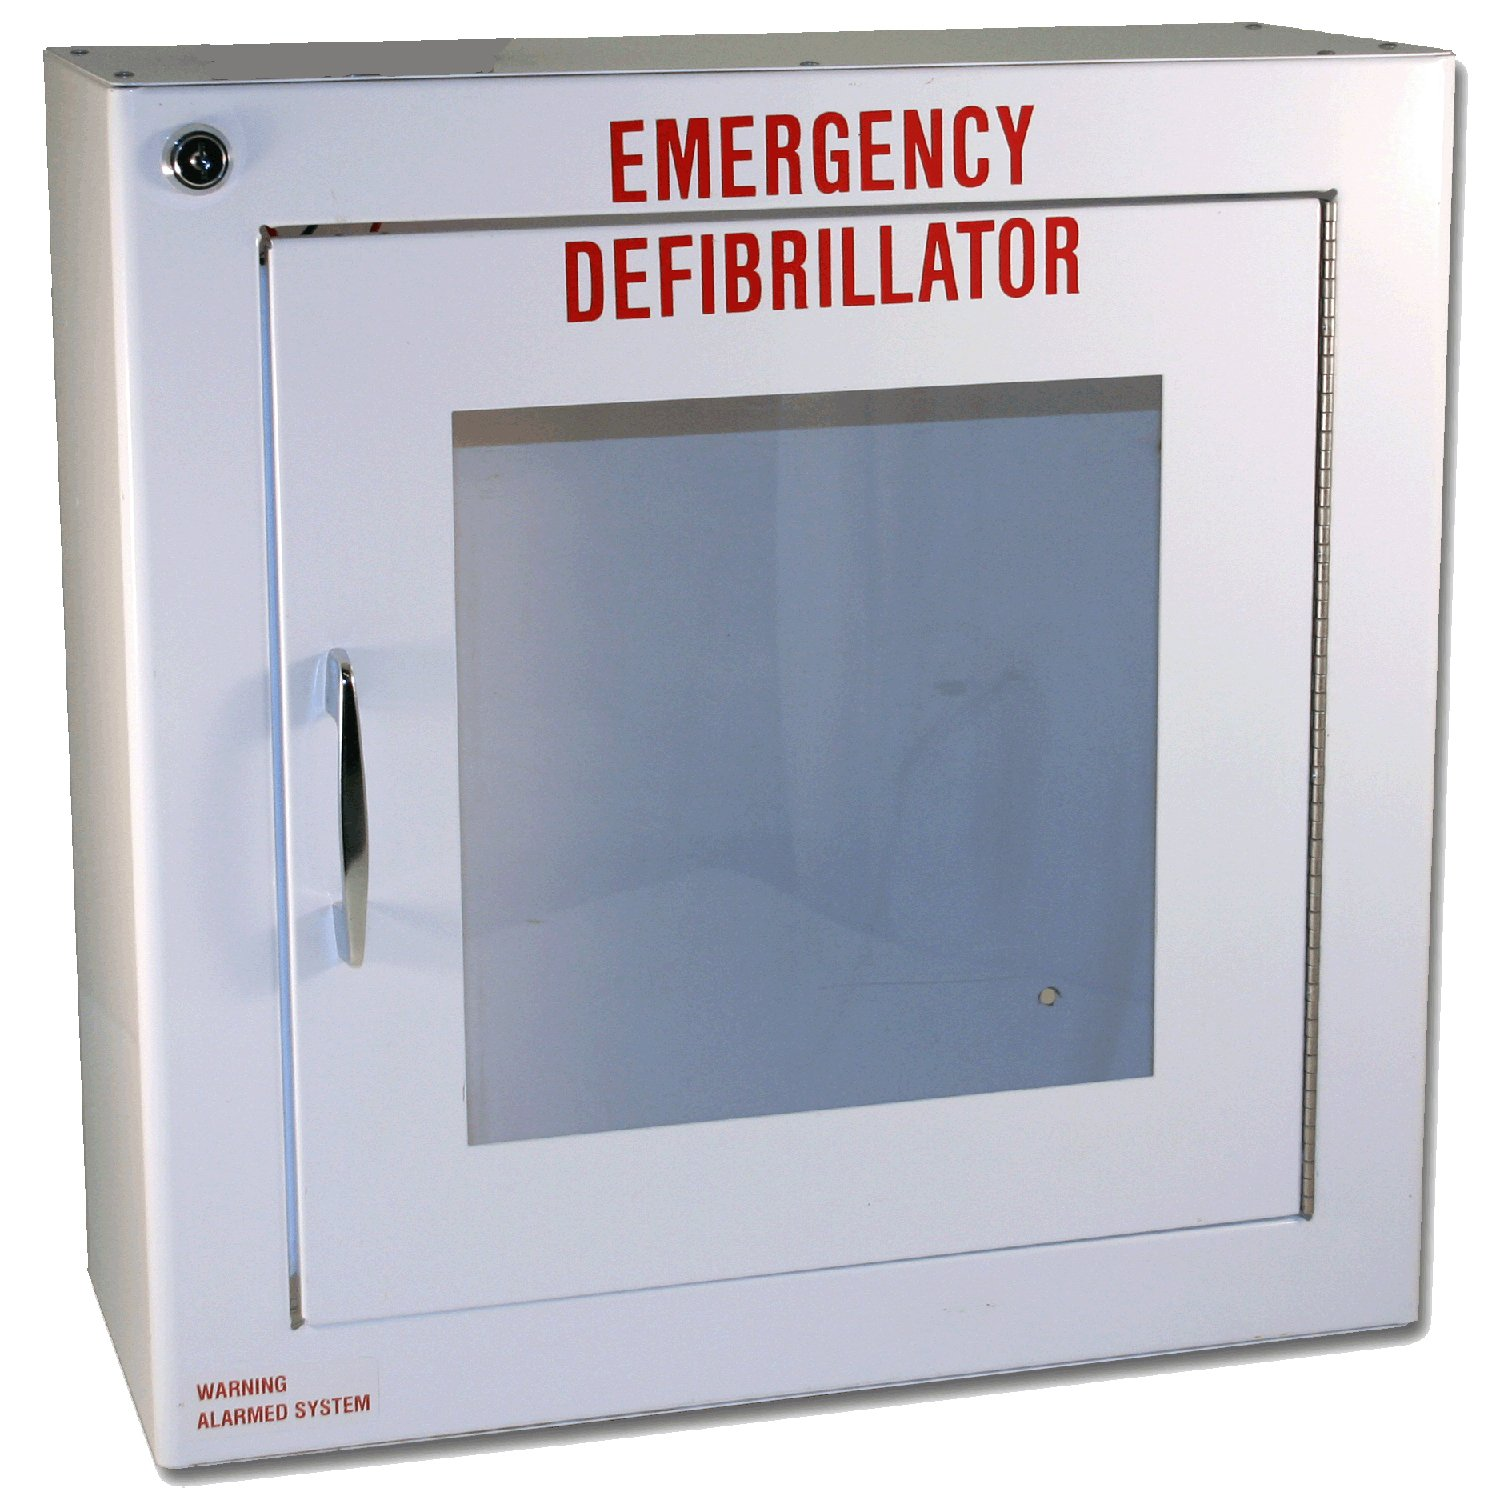 First Voice TS180SM-1 Medium Surface Mounted AED Cabinet with Alarm, 14' Width x 14' Height x 6.25' Depth 14 Width x 14 Height x 6.25 Depth Think Safe Inc.